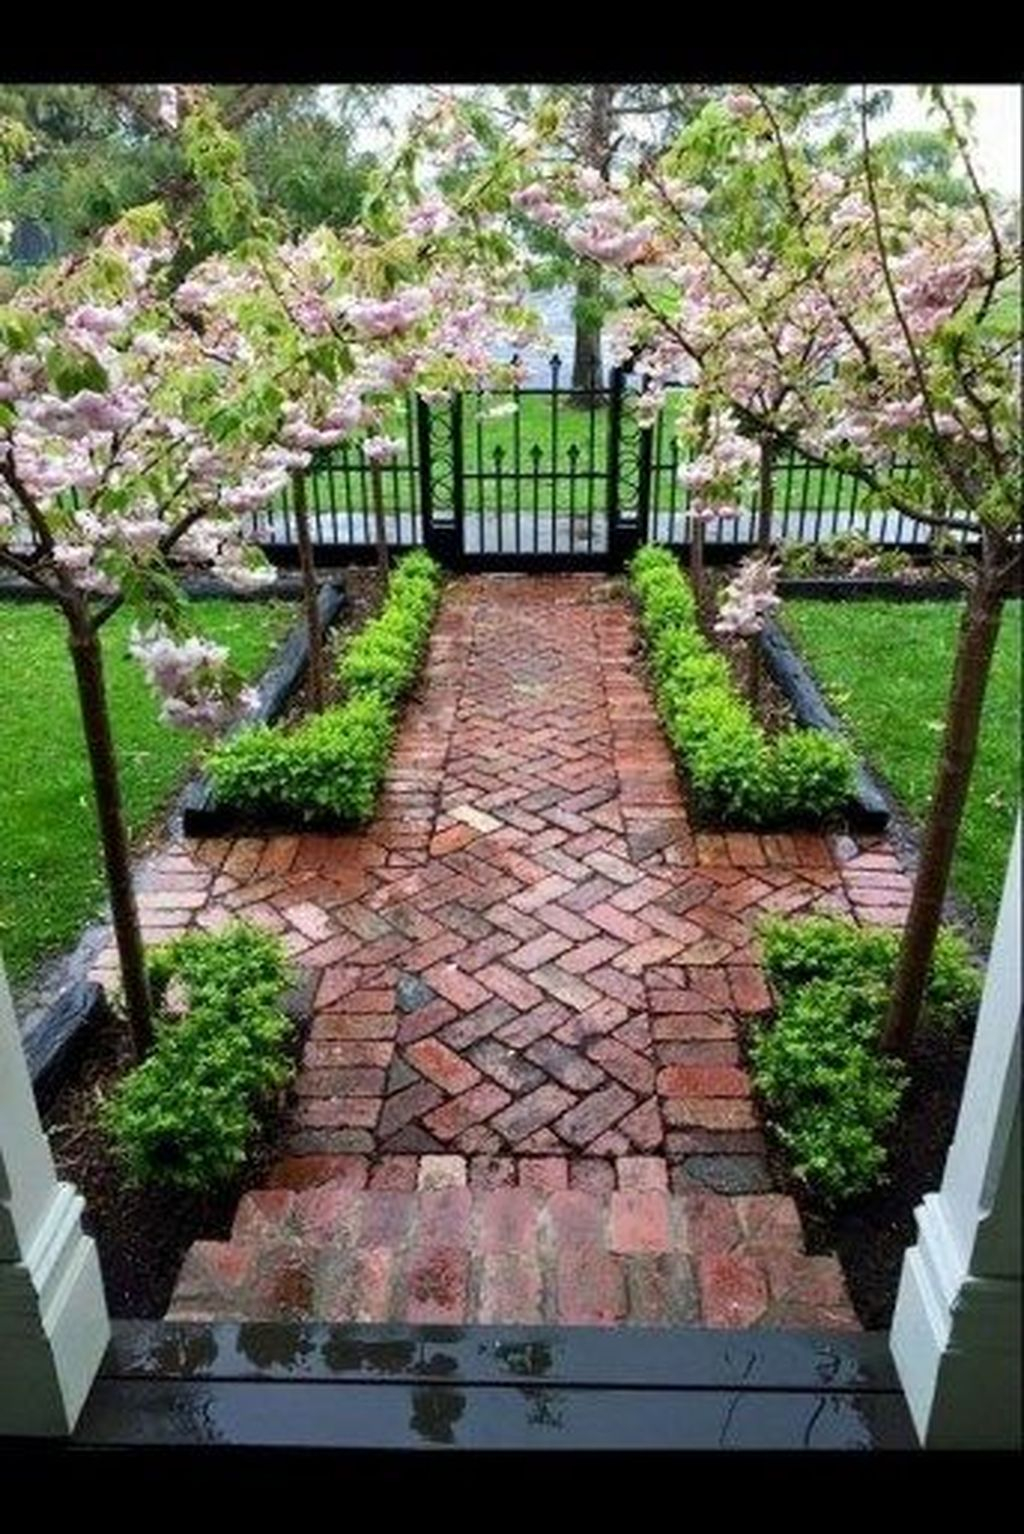 Best Jaw Dropping Urban Gardens Ideas To Copy Asap 24